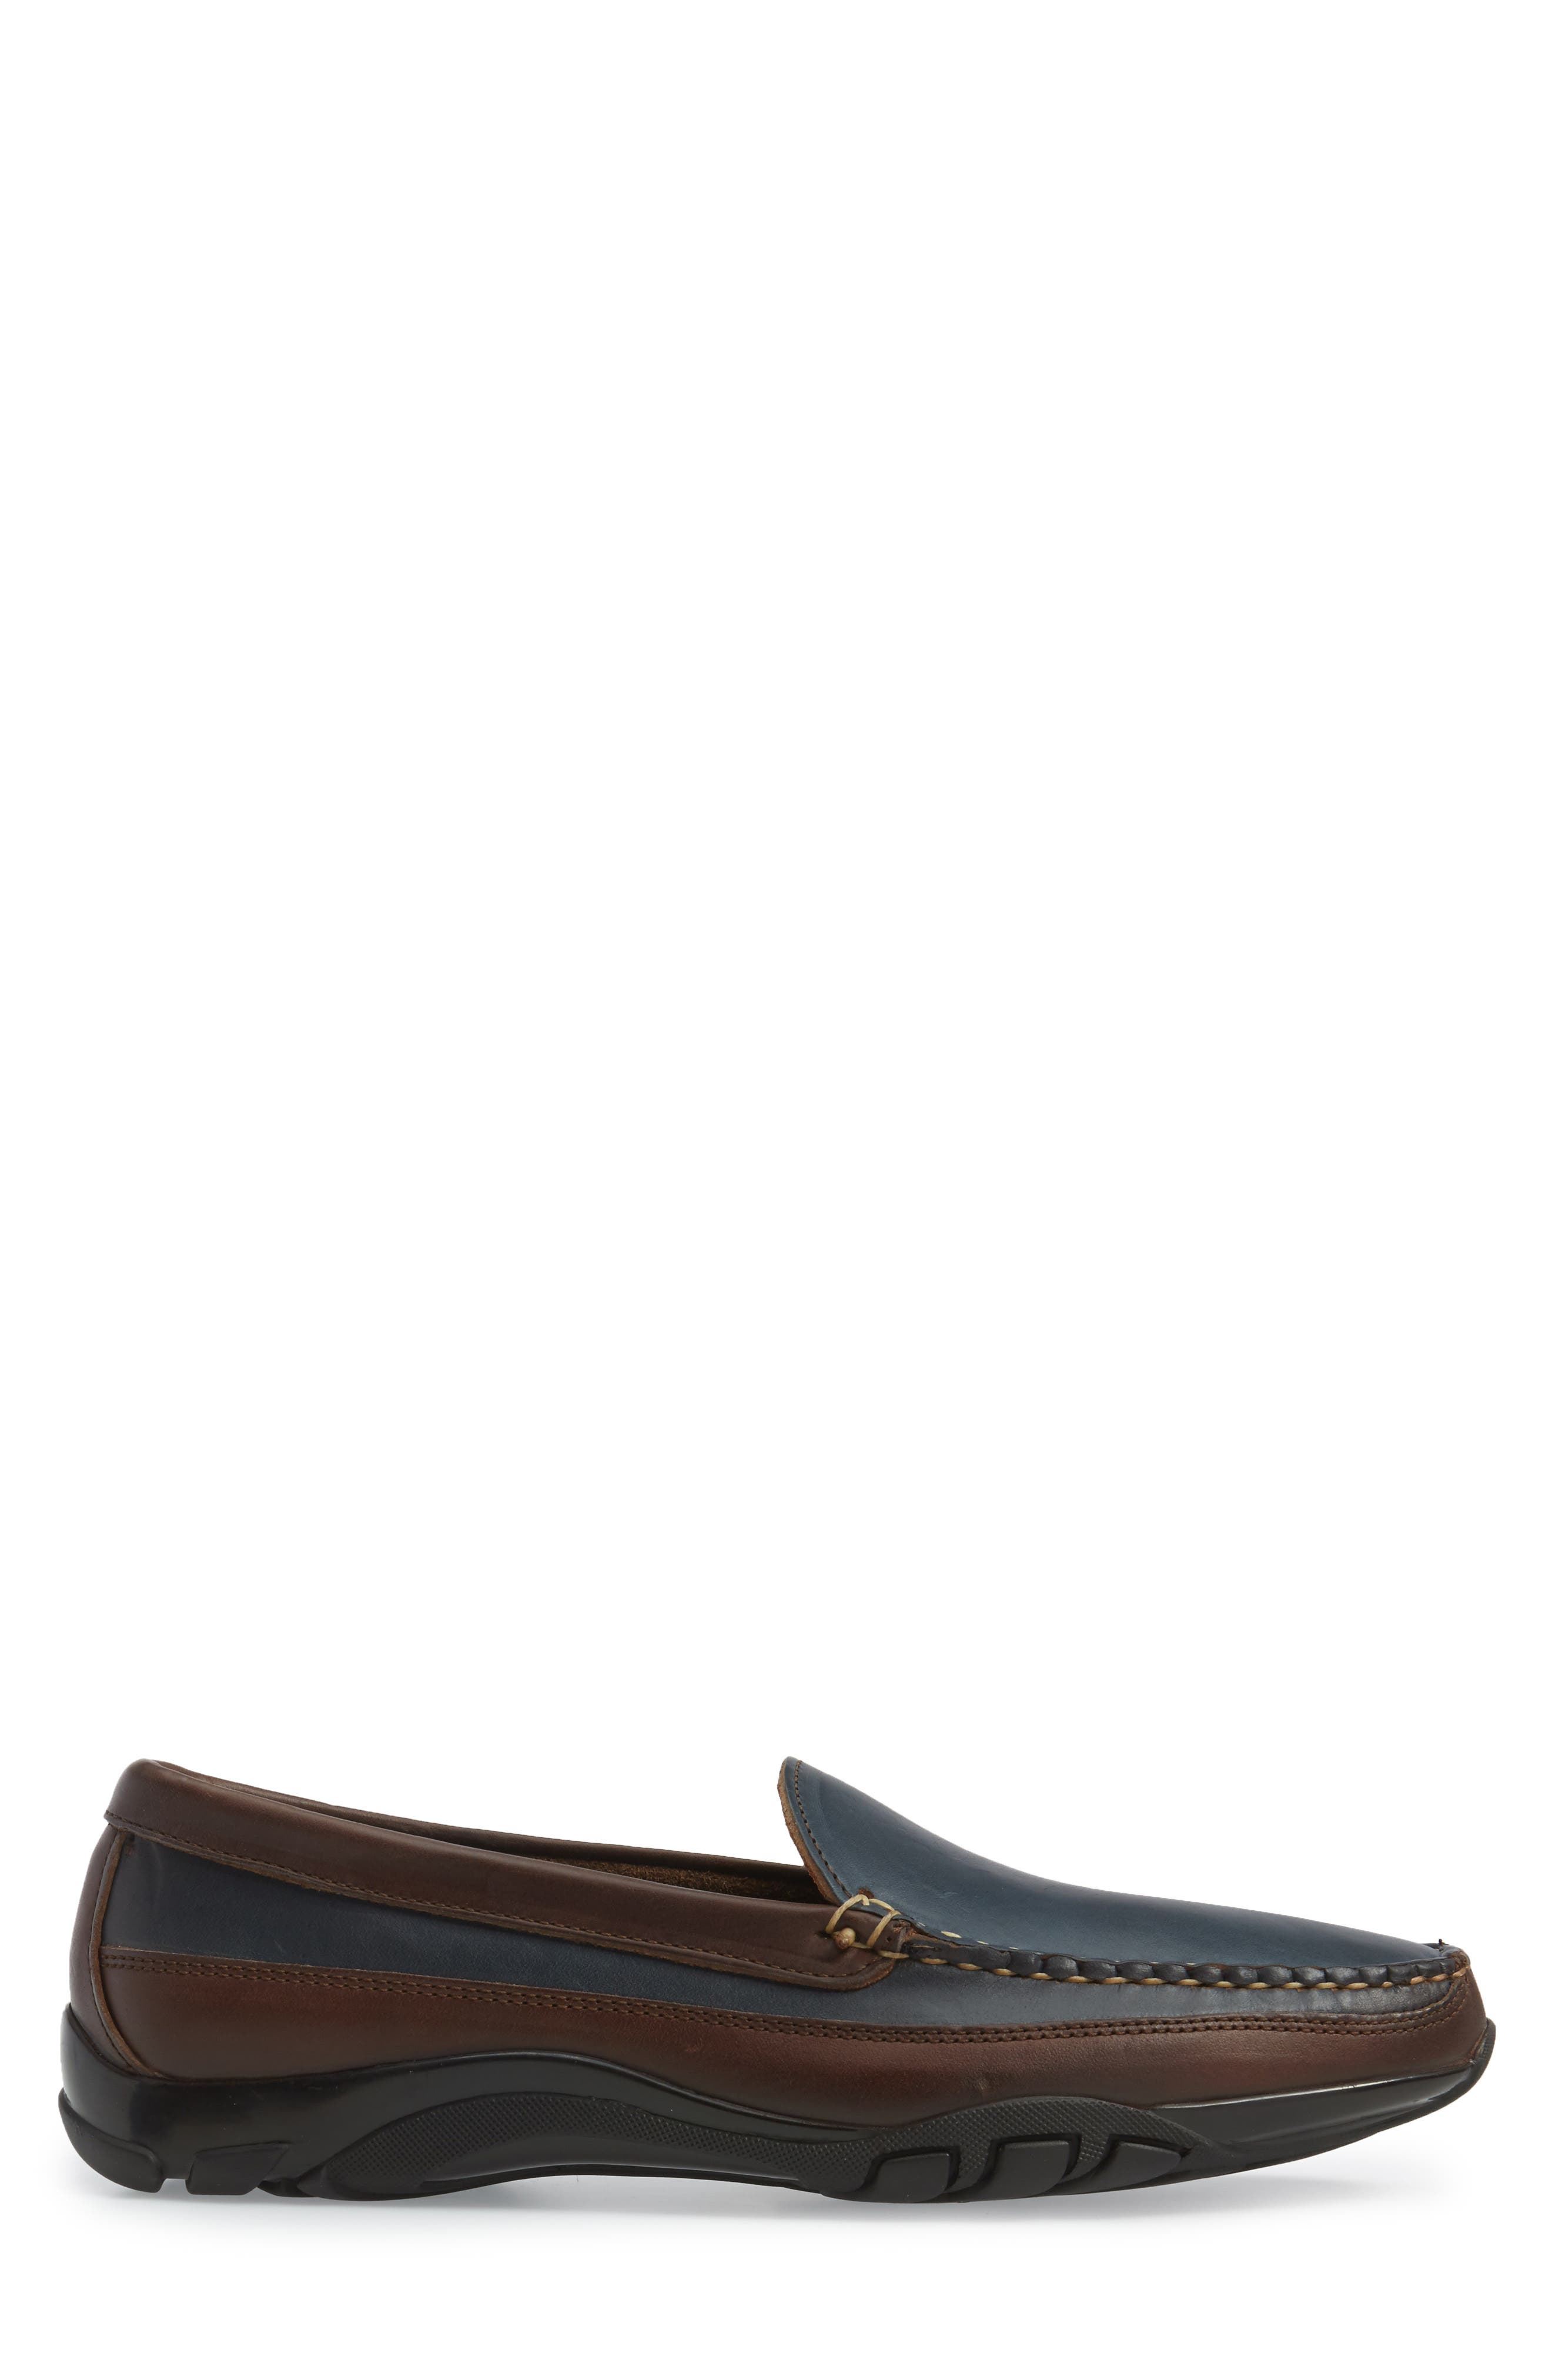 ALLEN EDMONDS, 'Boulder' Driving Loafer, Alternate thumbnail 3, color, NAVY/ BROWN